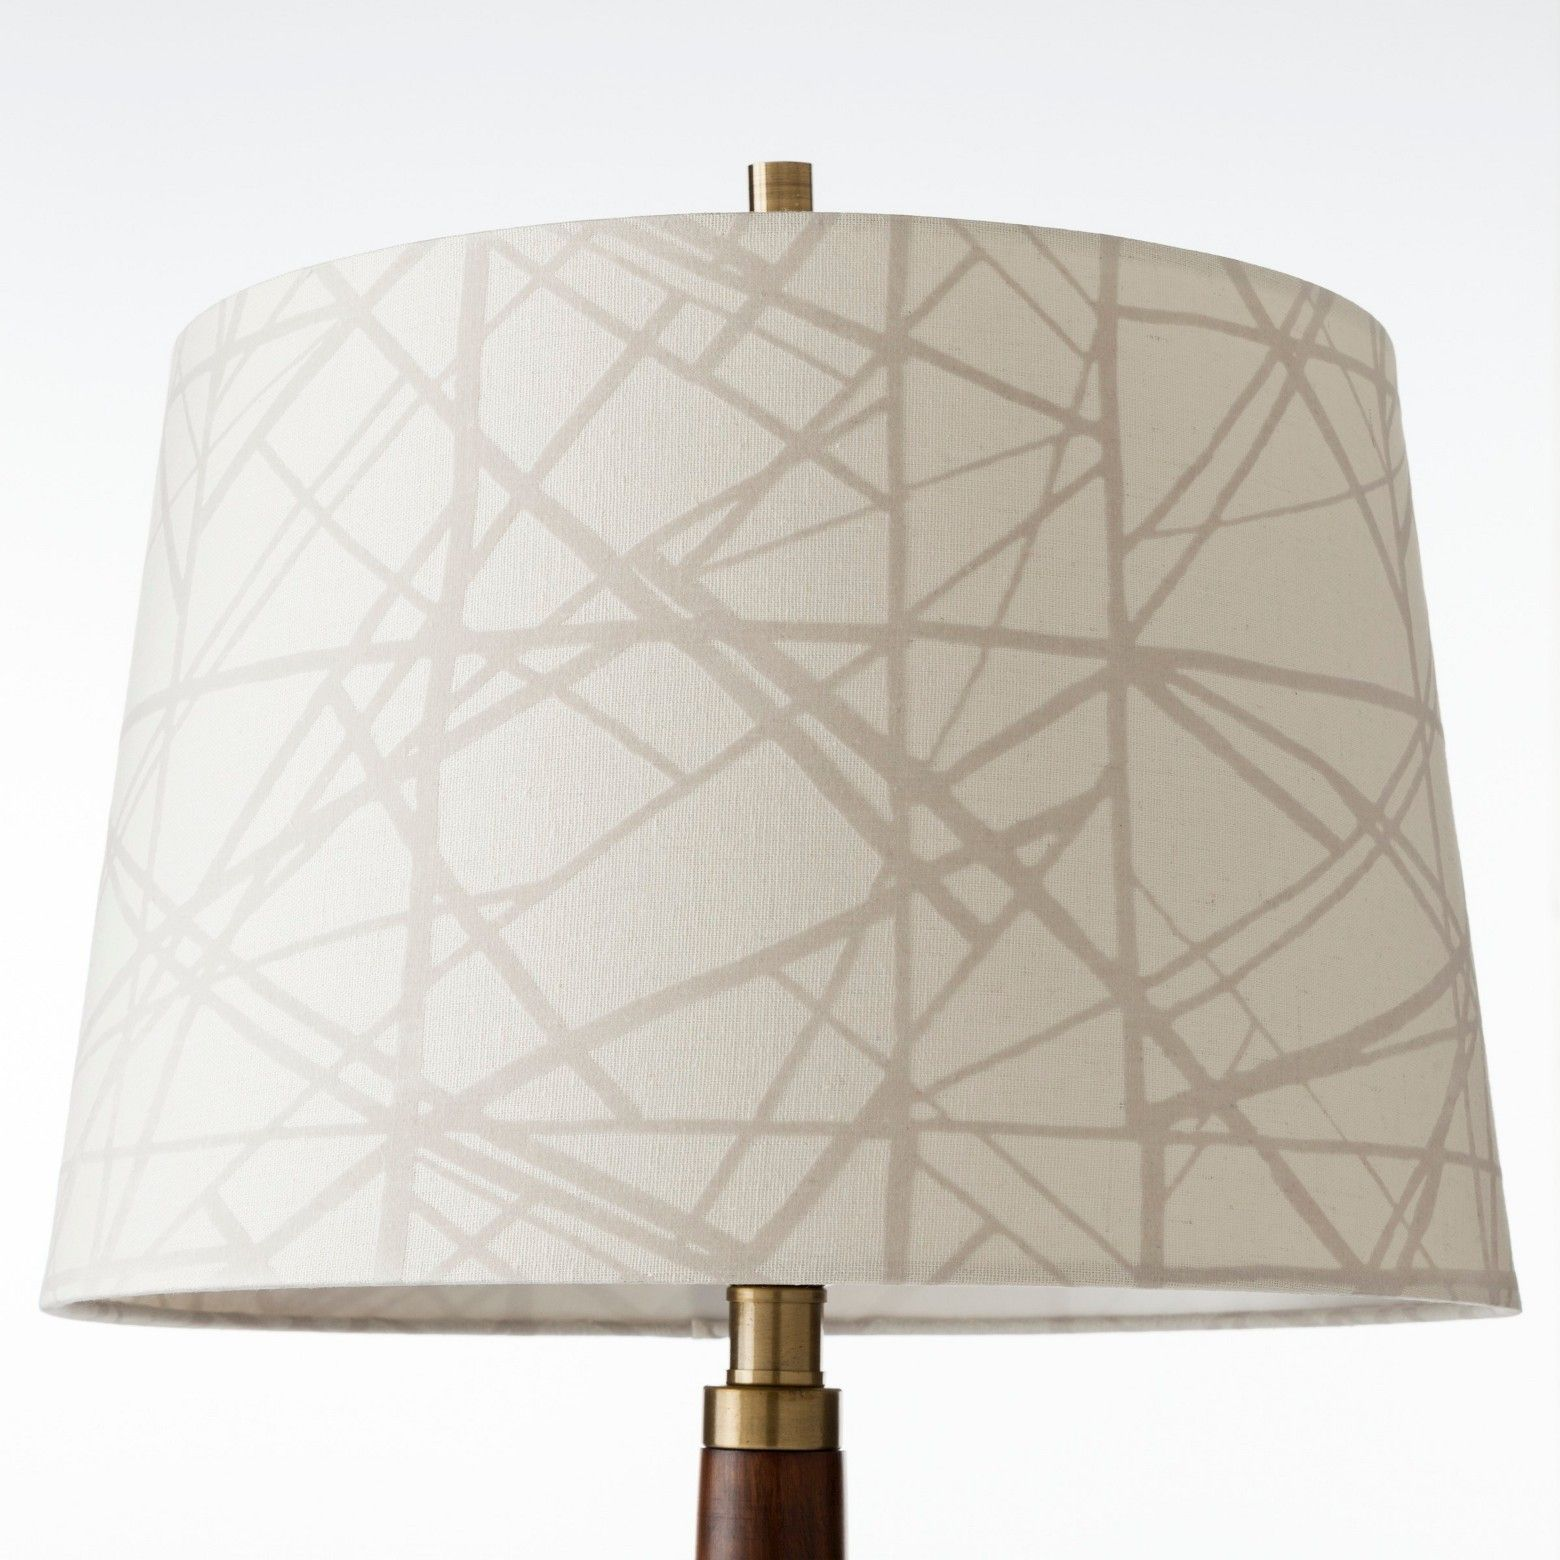 Create your own décor with the Flocked Criss Cross Pattern Replacement Lamp Shade Large - Cream - Threshold. Add a fresh touch to your tired old décor by changing the lampshade on a favorite lamp base or start out with a mix and match style that is uniquely yours. You'll love the options you now have to let your personal aesthetic shine.